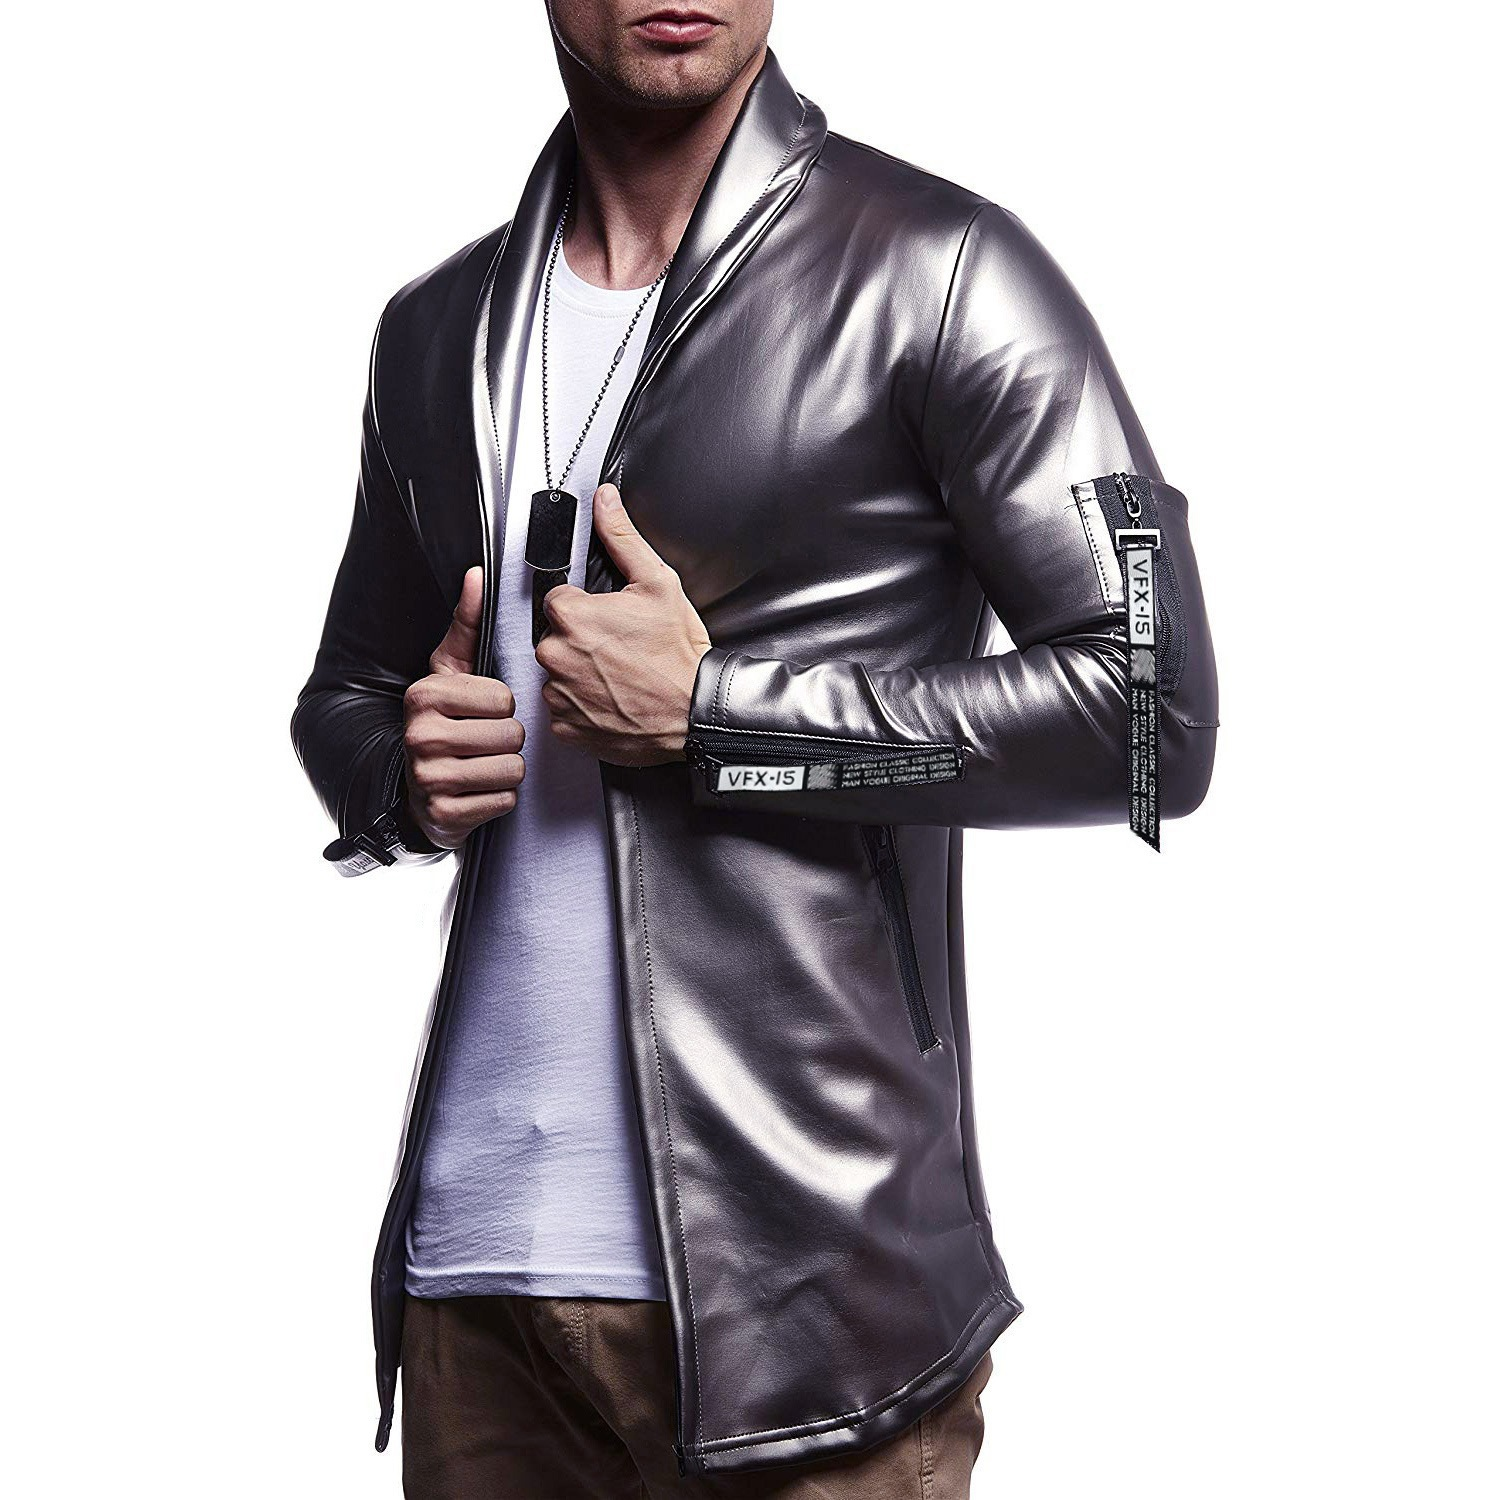 MEN'S WEAR 2019 Autumn And Winter New Style Leather Coat Casual's Glitter Clothes Shop-Style Slim Fit PU Leather Suit Jacket